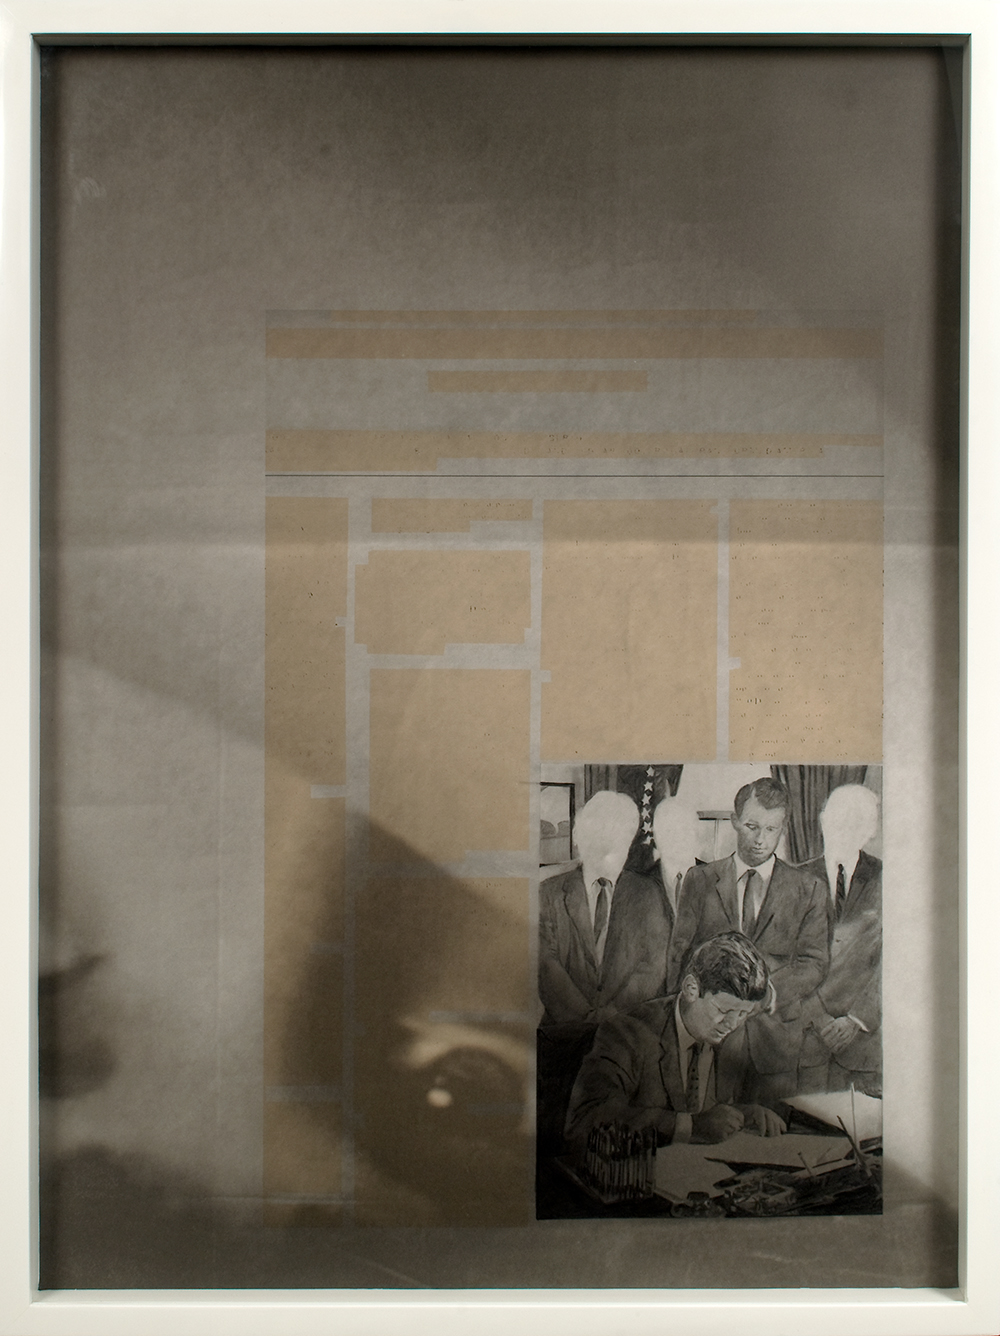 no.6- Untitled (J.F. Kennedy & R.F. Kennedy) pencil on paper, ink jet print,  2007/08